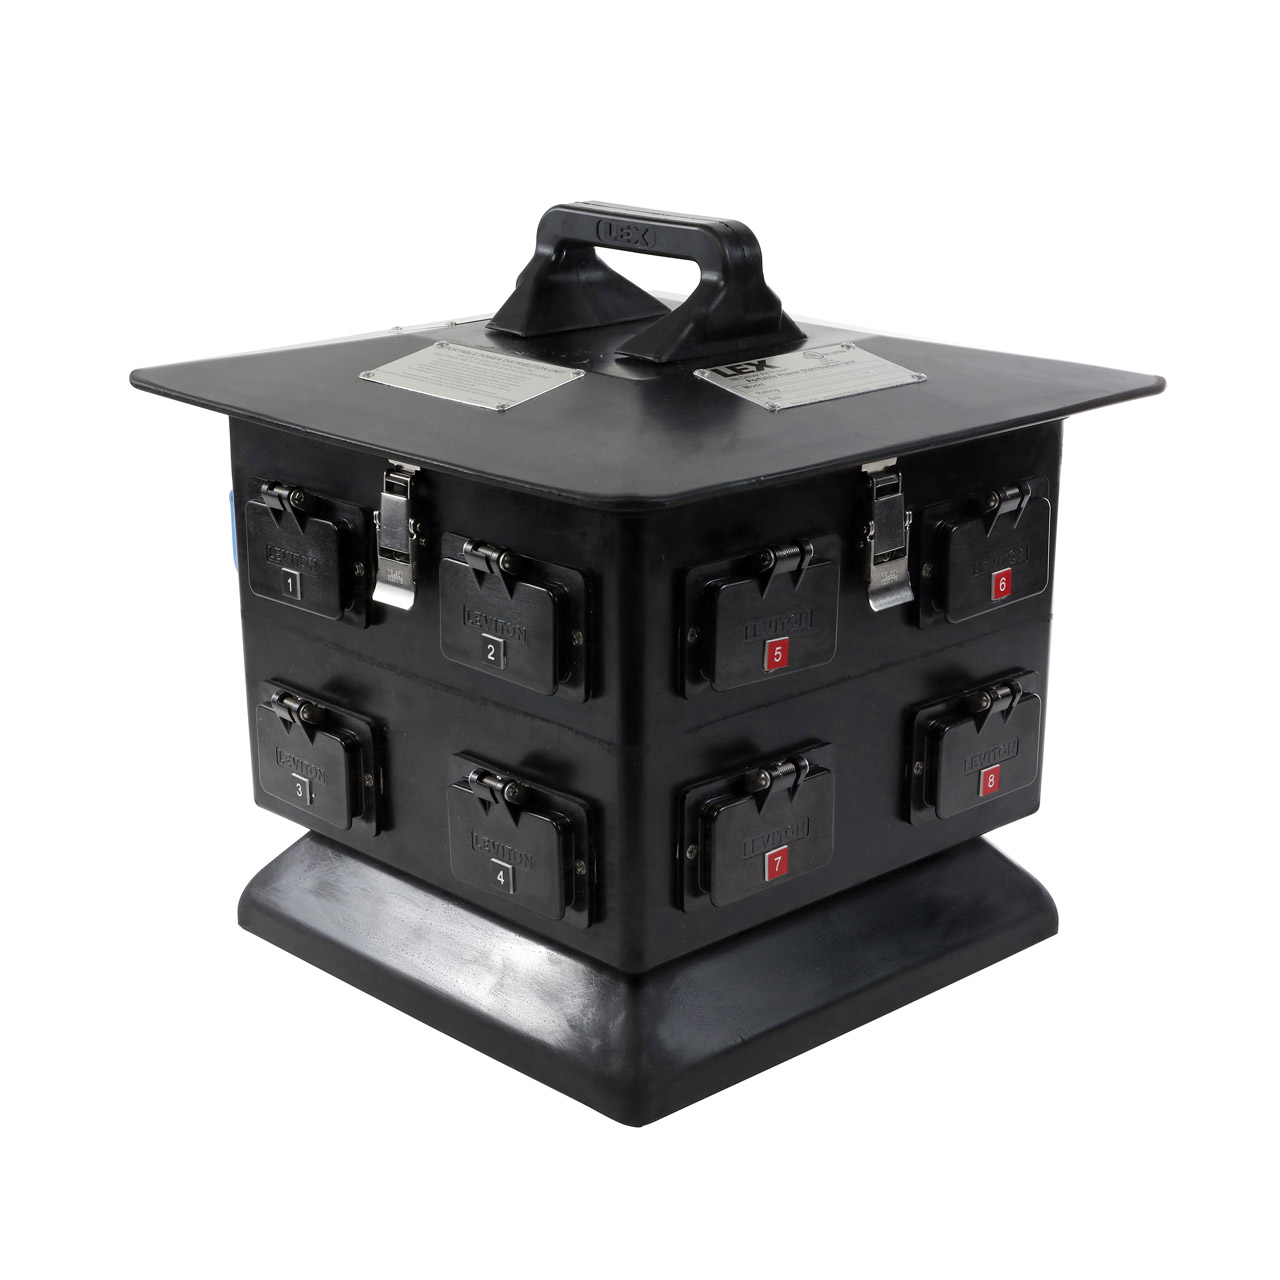 100 Amp Pagoda to GFCI Duplex Receptacles, Weather Resistant